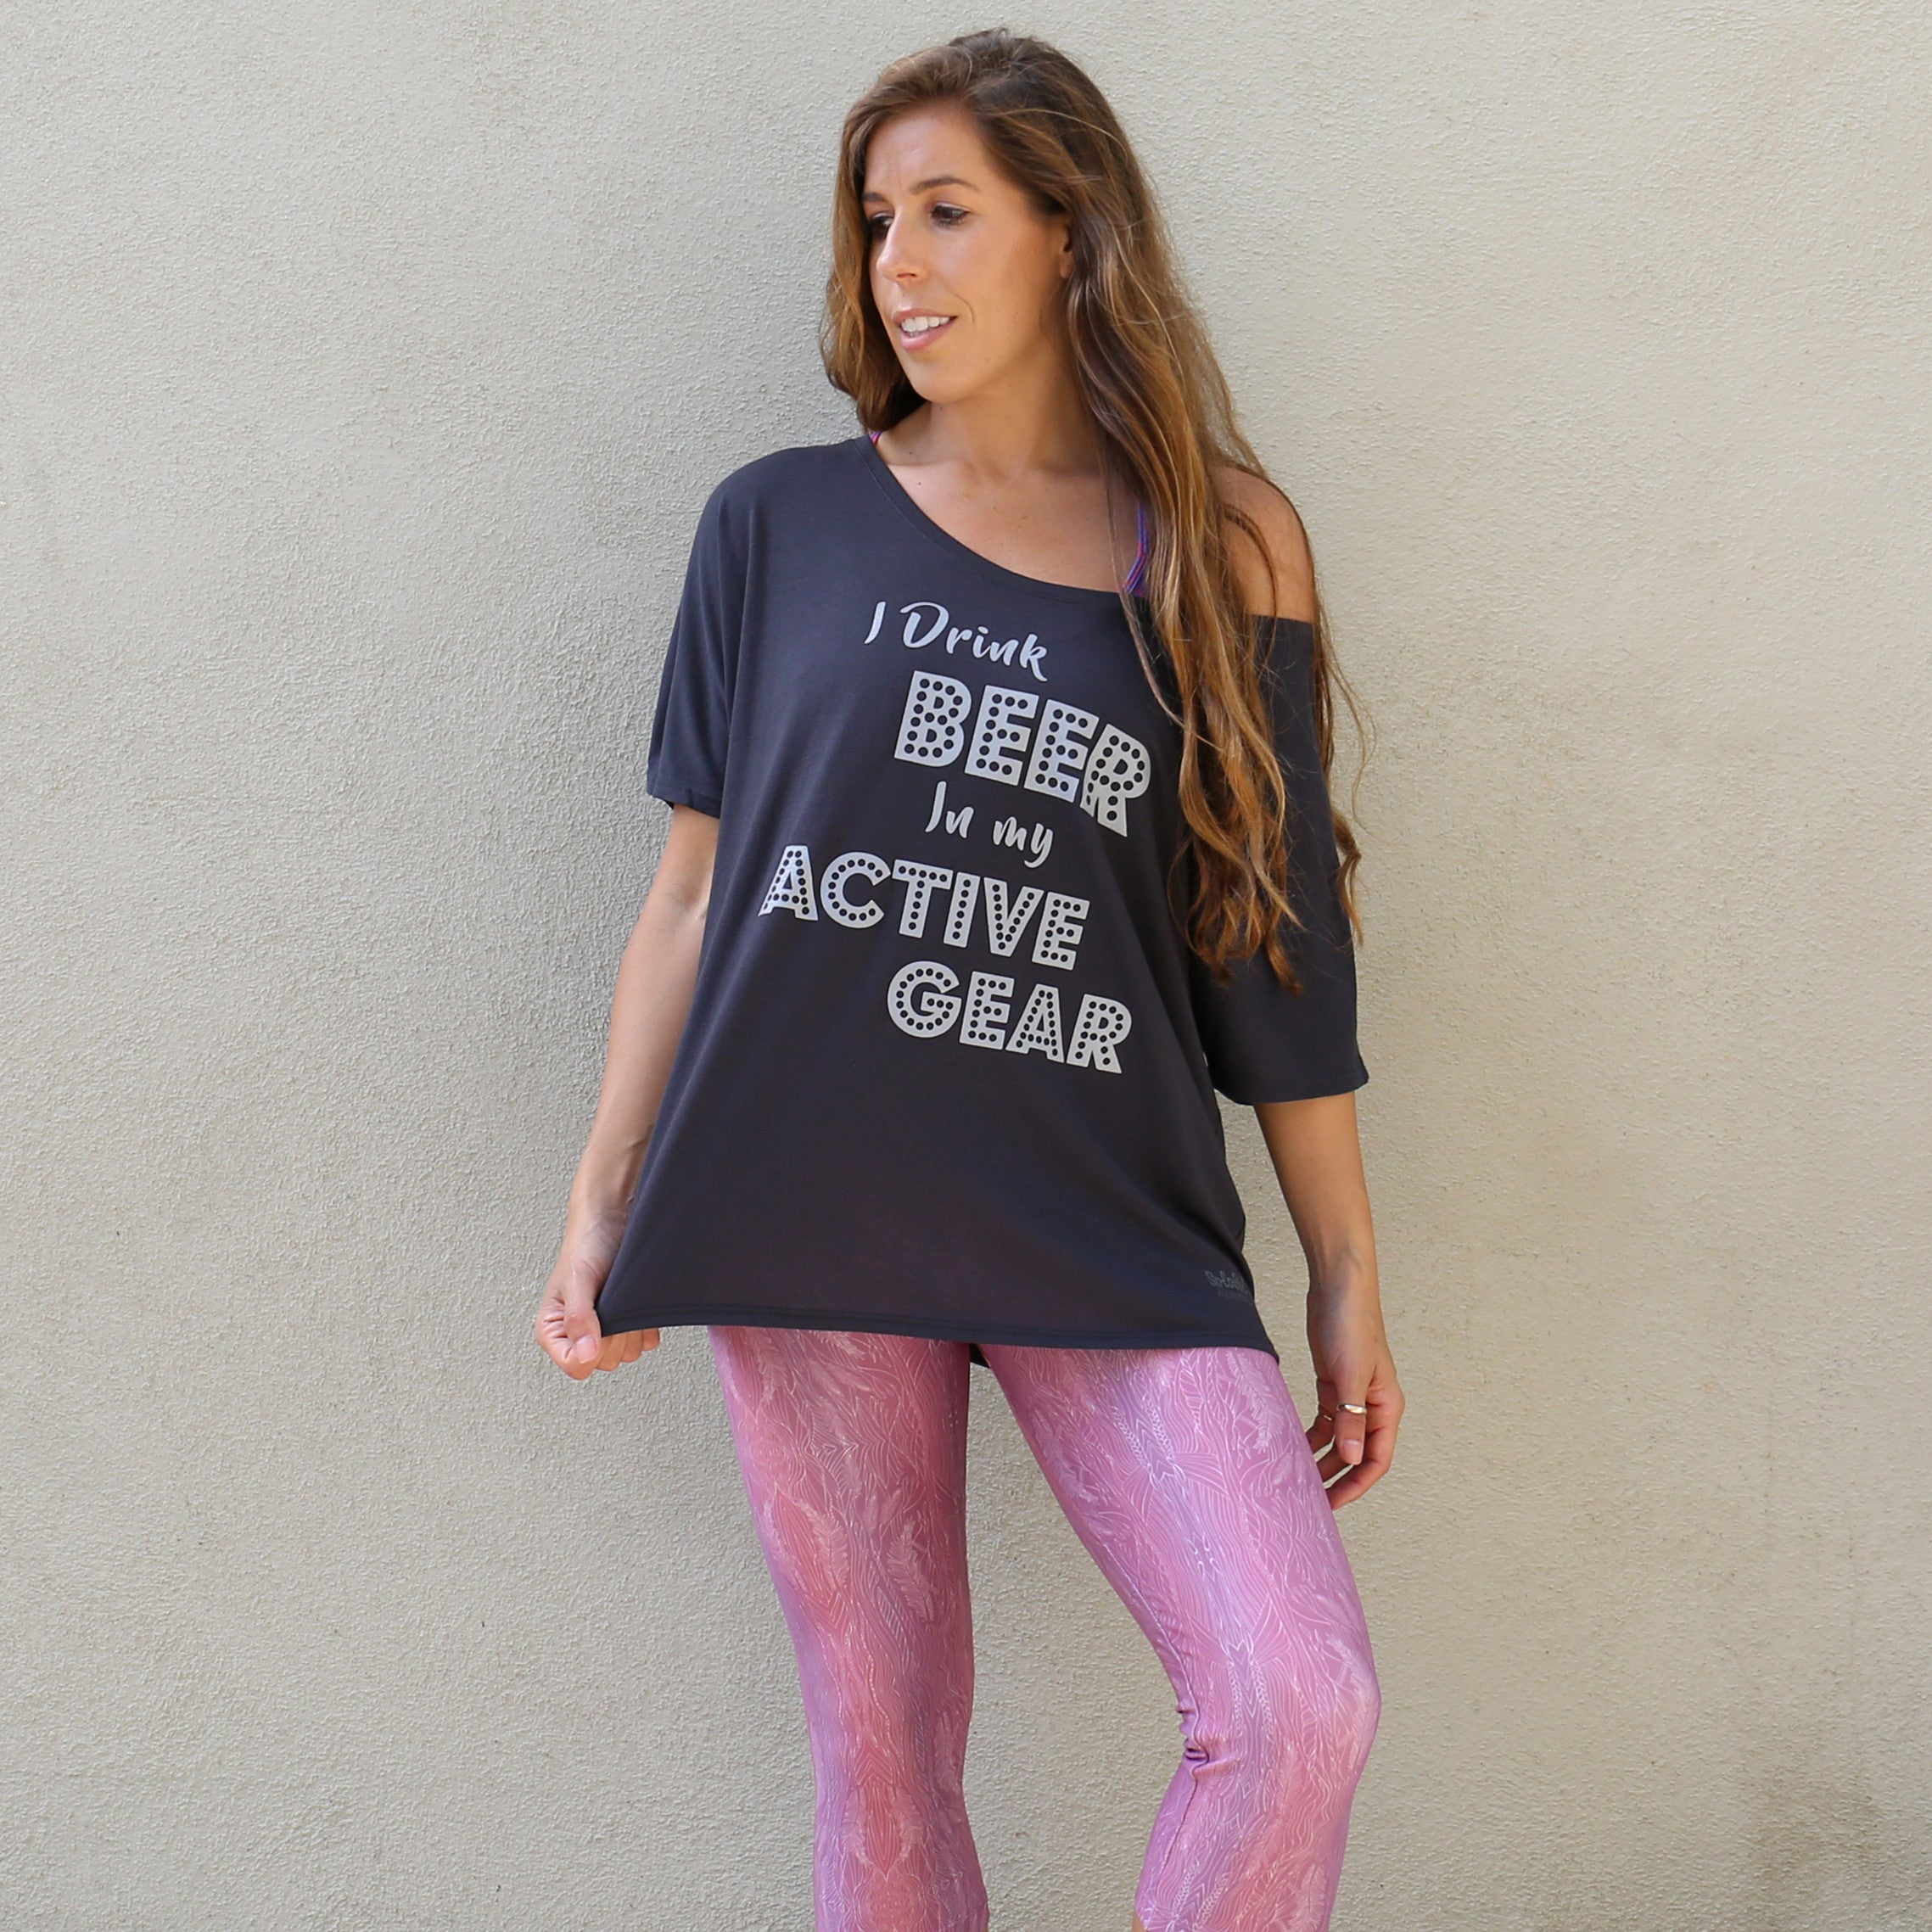 "Graphic Slouchy Tee ""I Drink Beer in My Active Gear"" Charcoal Grey"